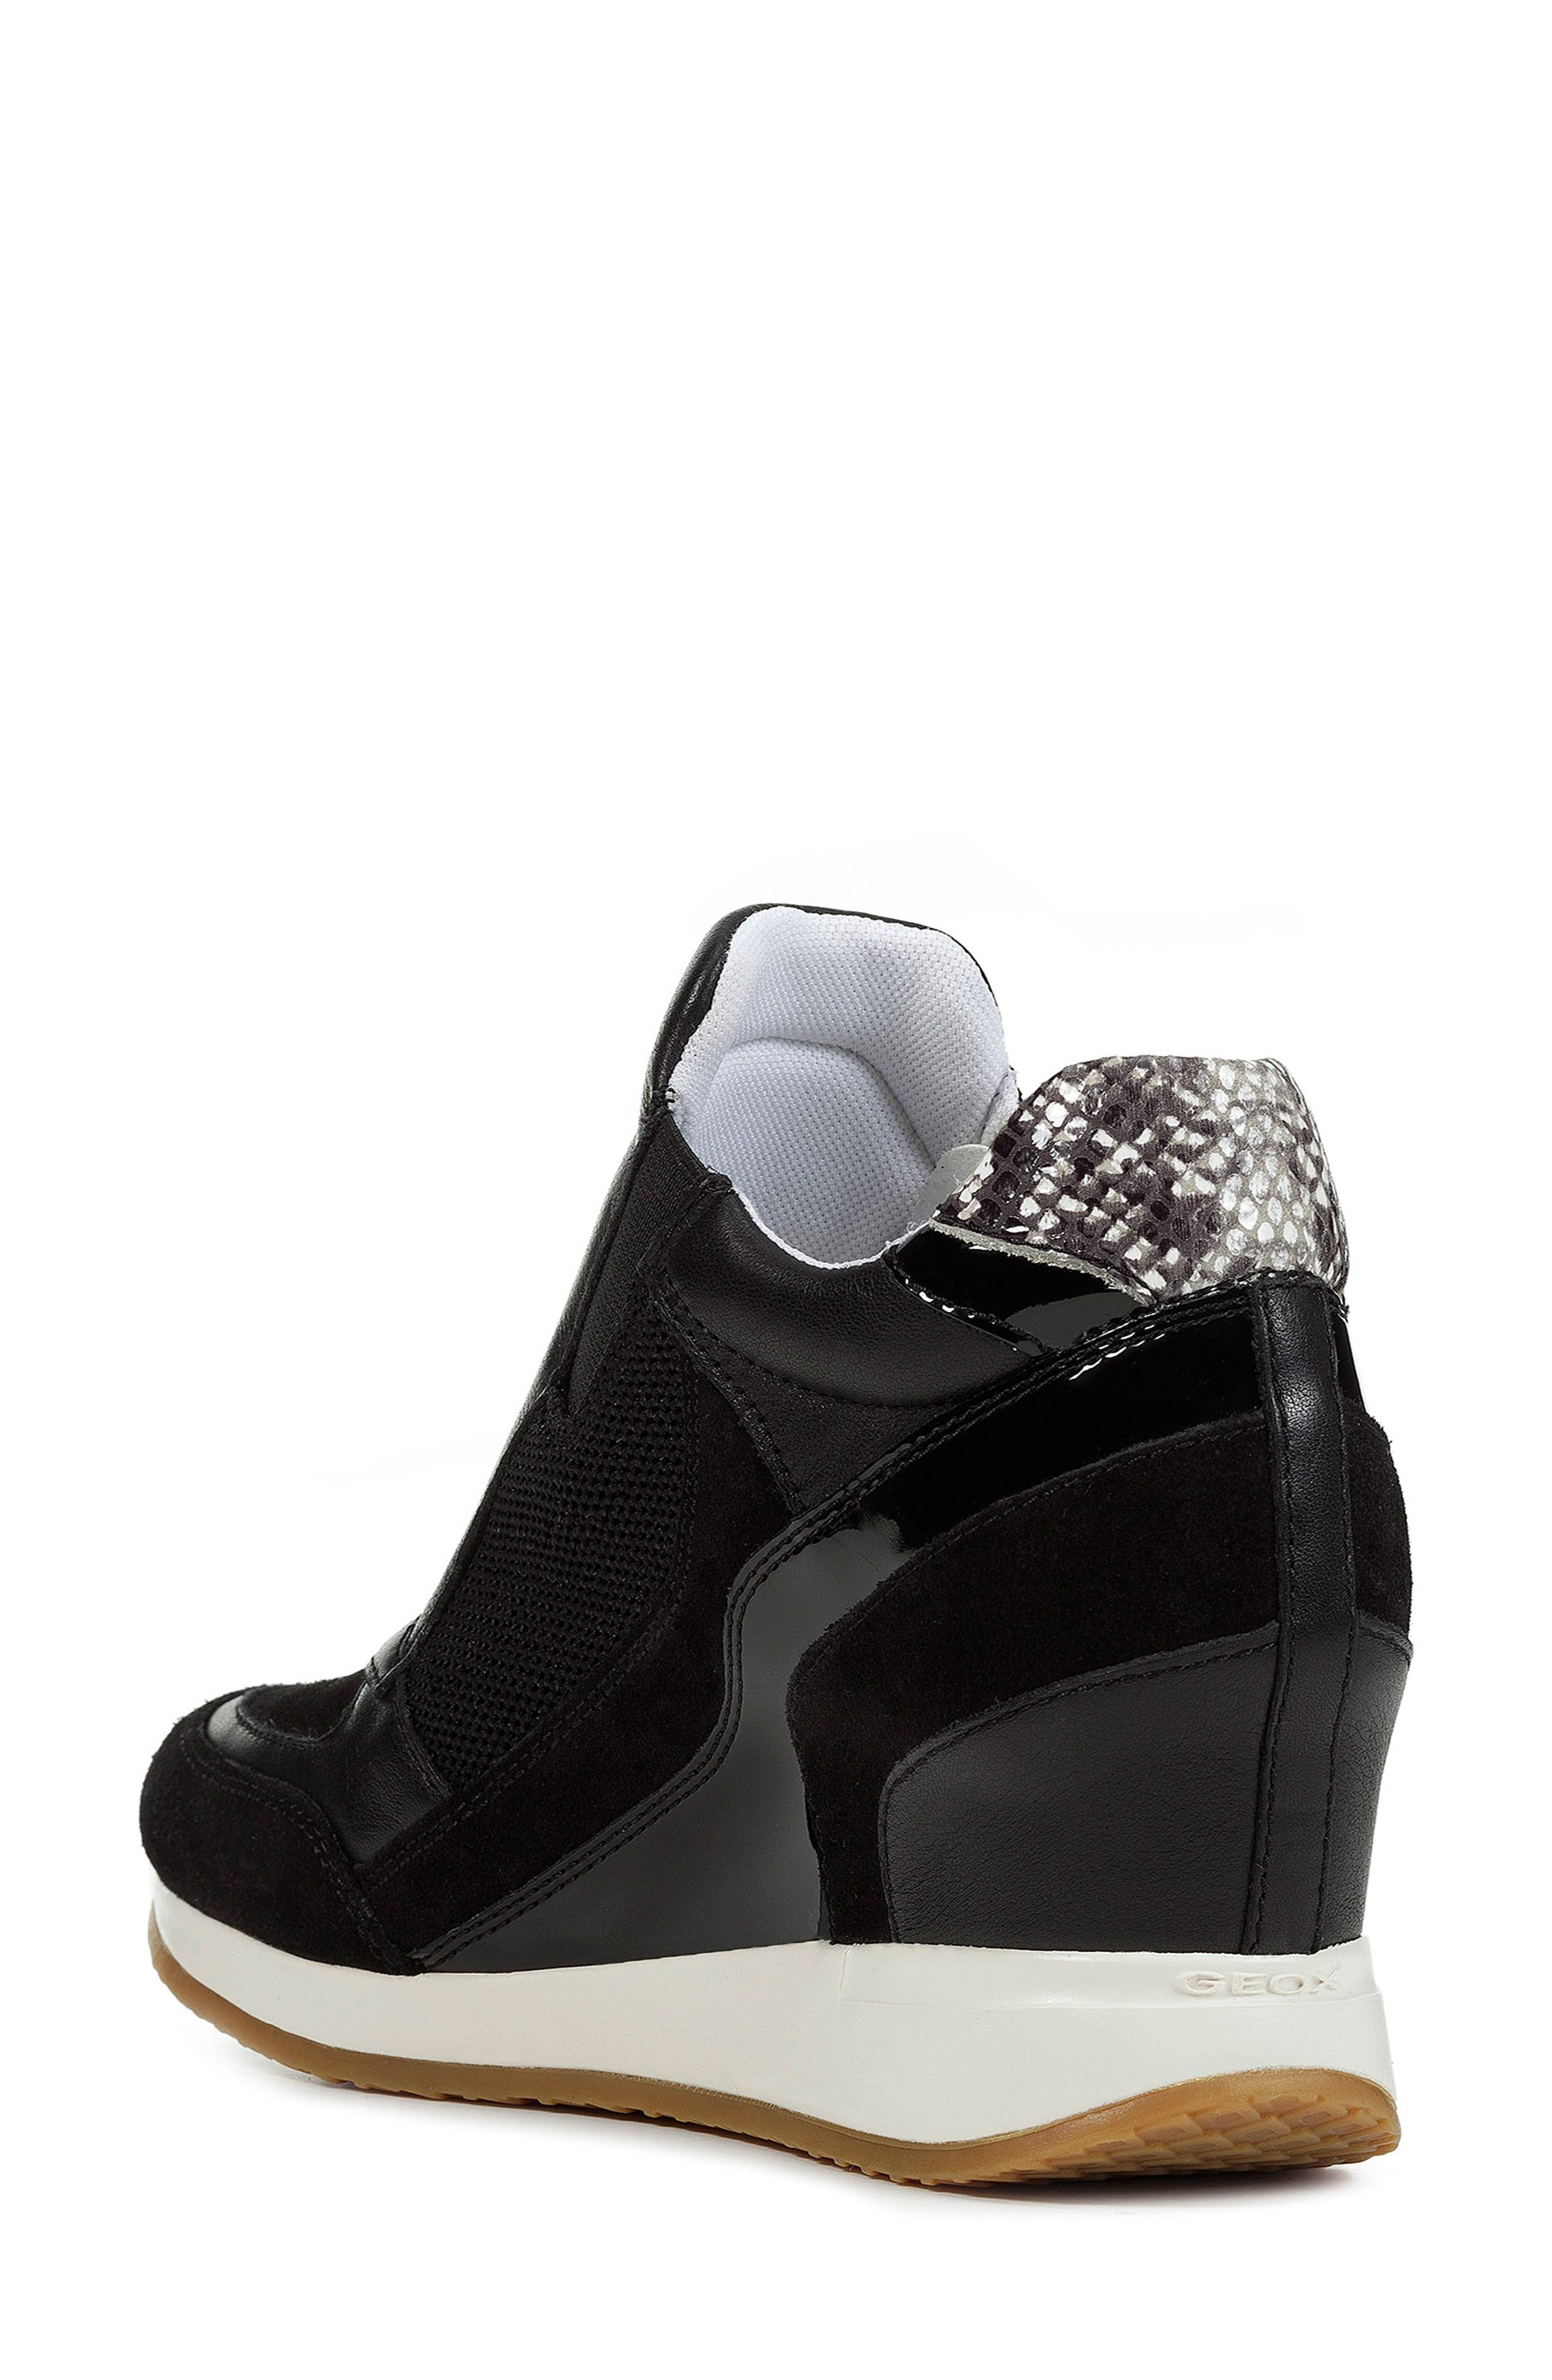 GEOX, Nydame Wedge Sneaker, Alternate thumbnail 2, color, BLACK/ BLACK LEATHER